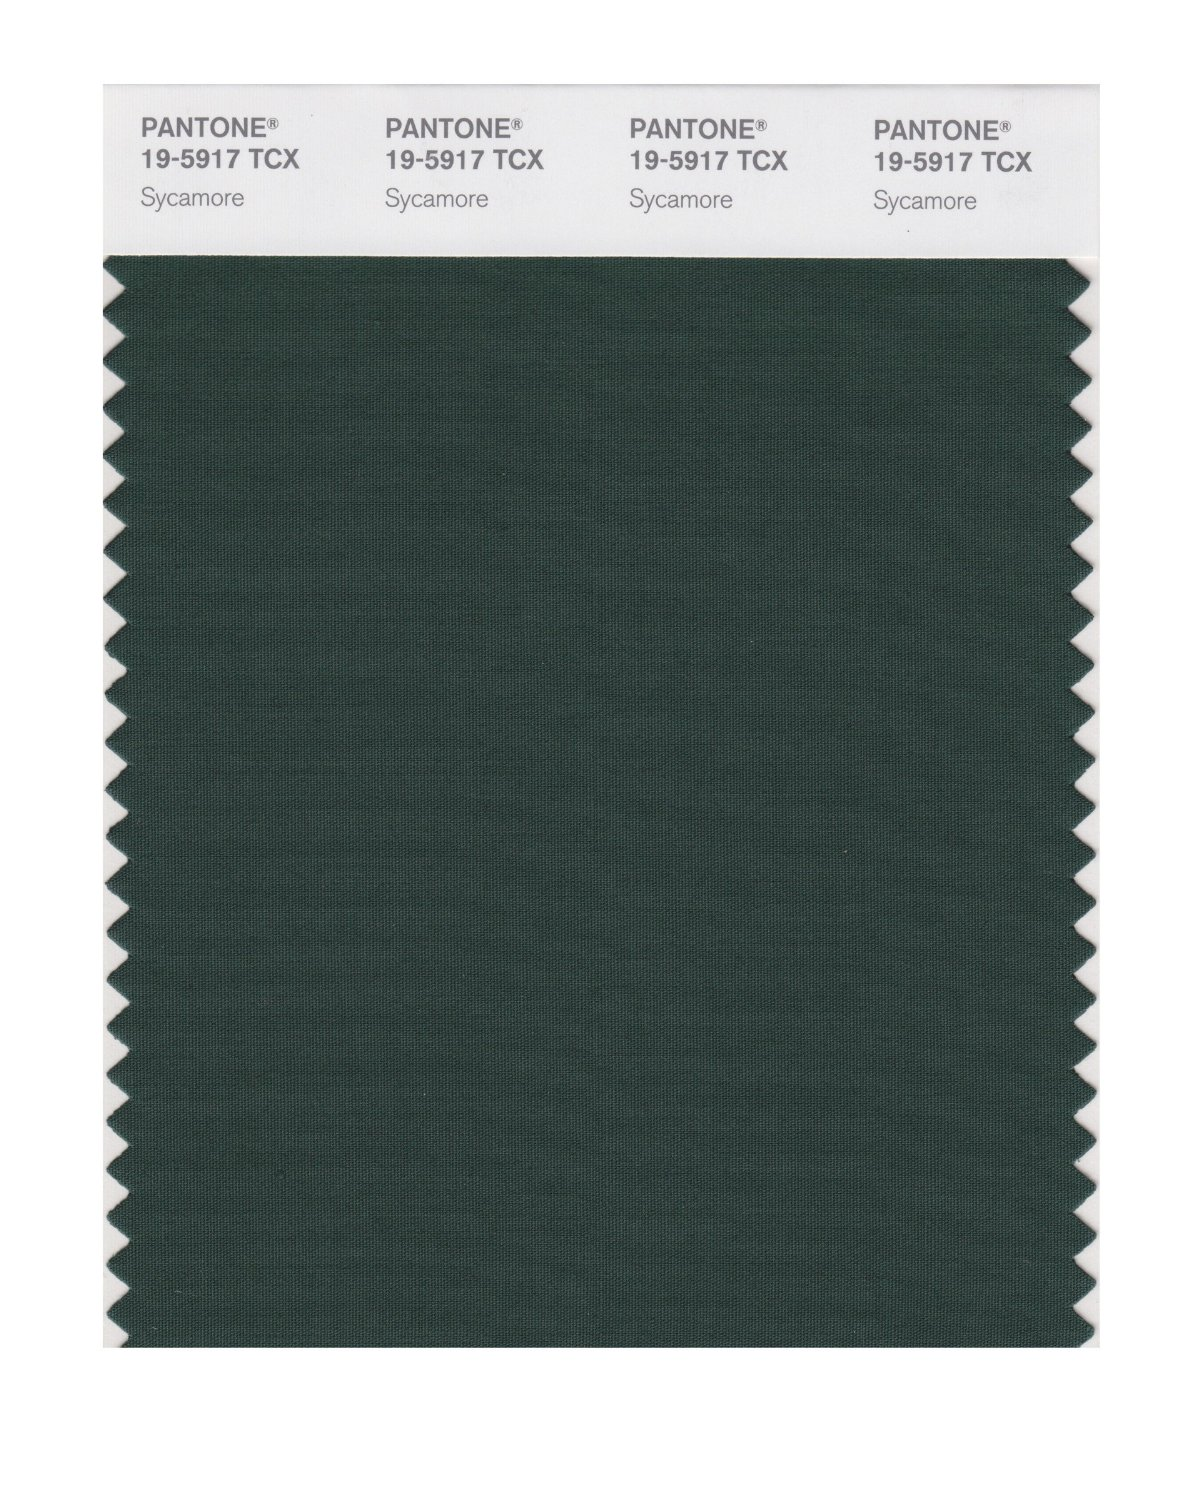 Pantone Smart Swatch 19-5917 Sycamore